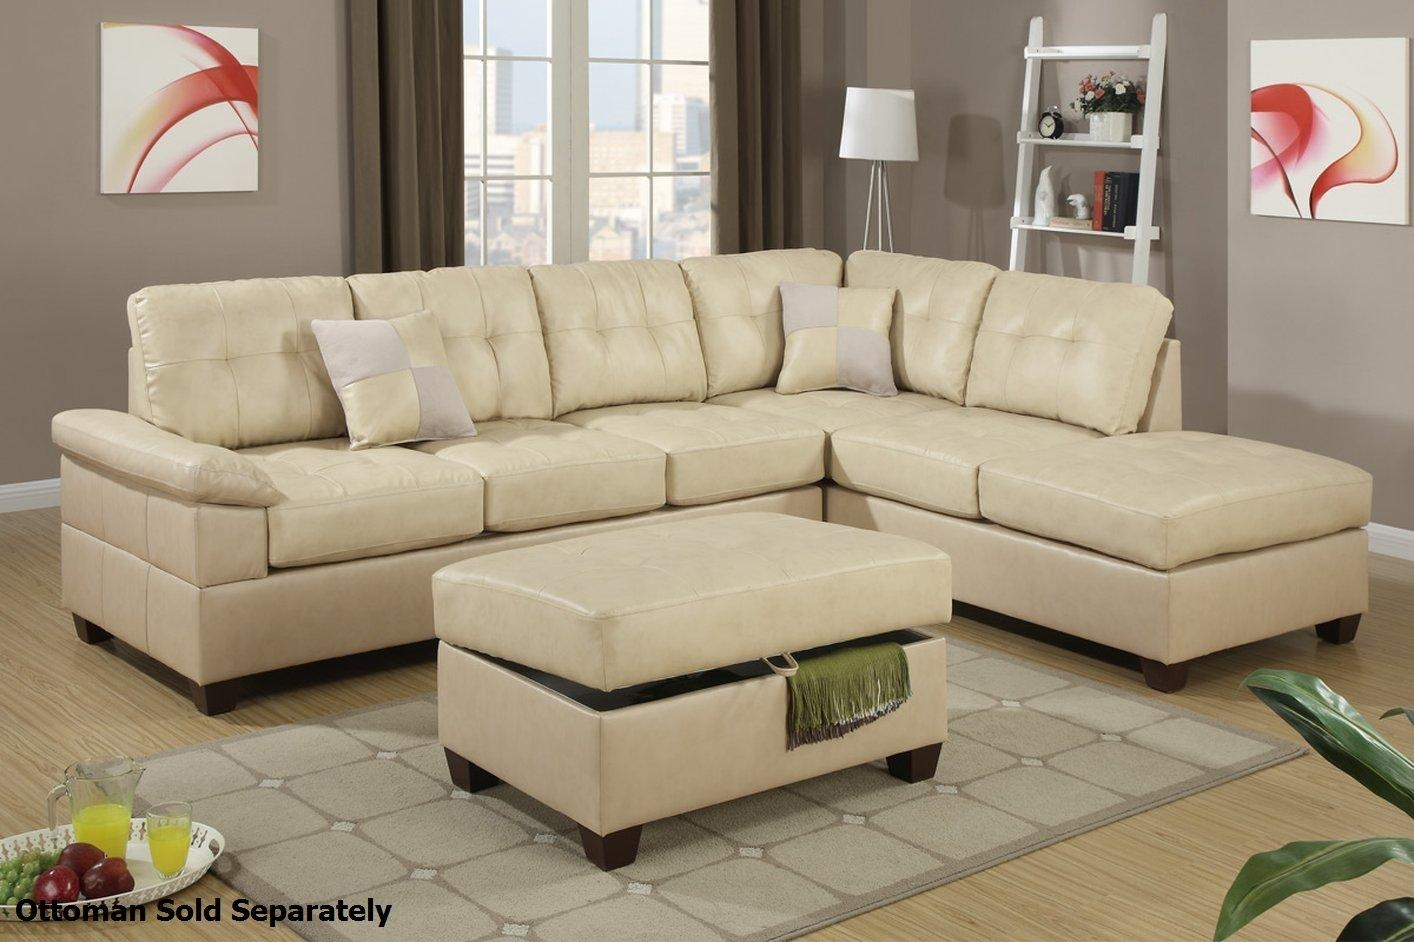 Beige Leather Sofas Pertaining To Beige Leather Couches (Image 4 of 20)